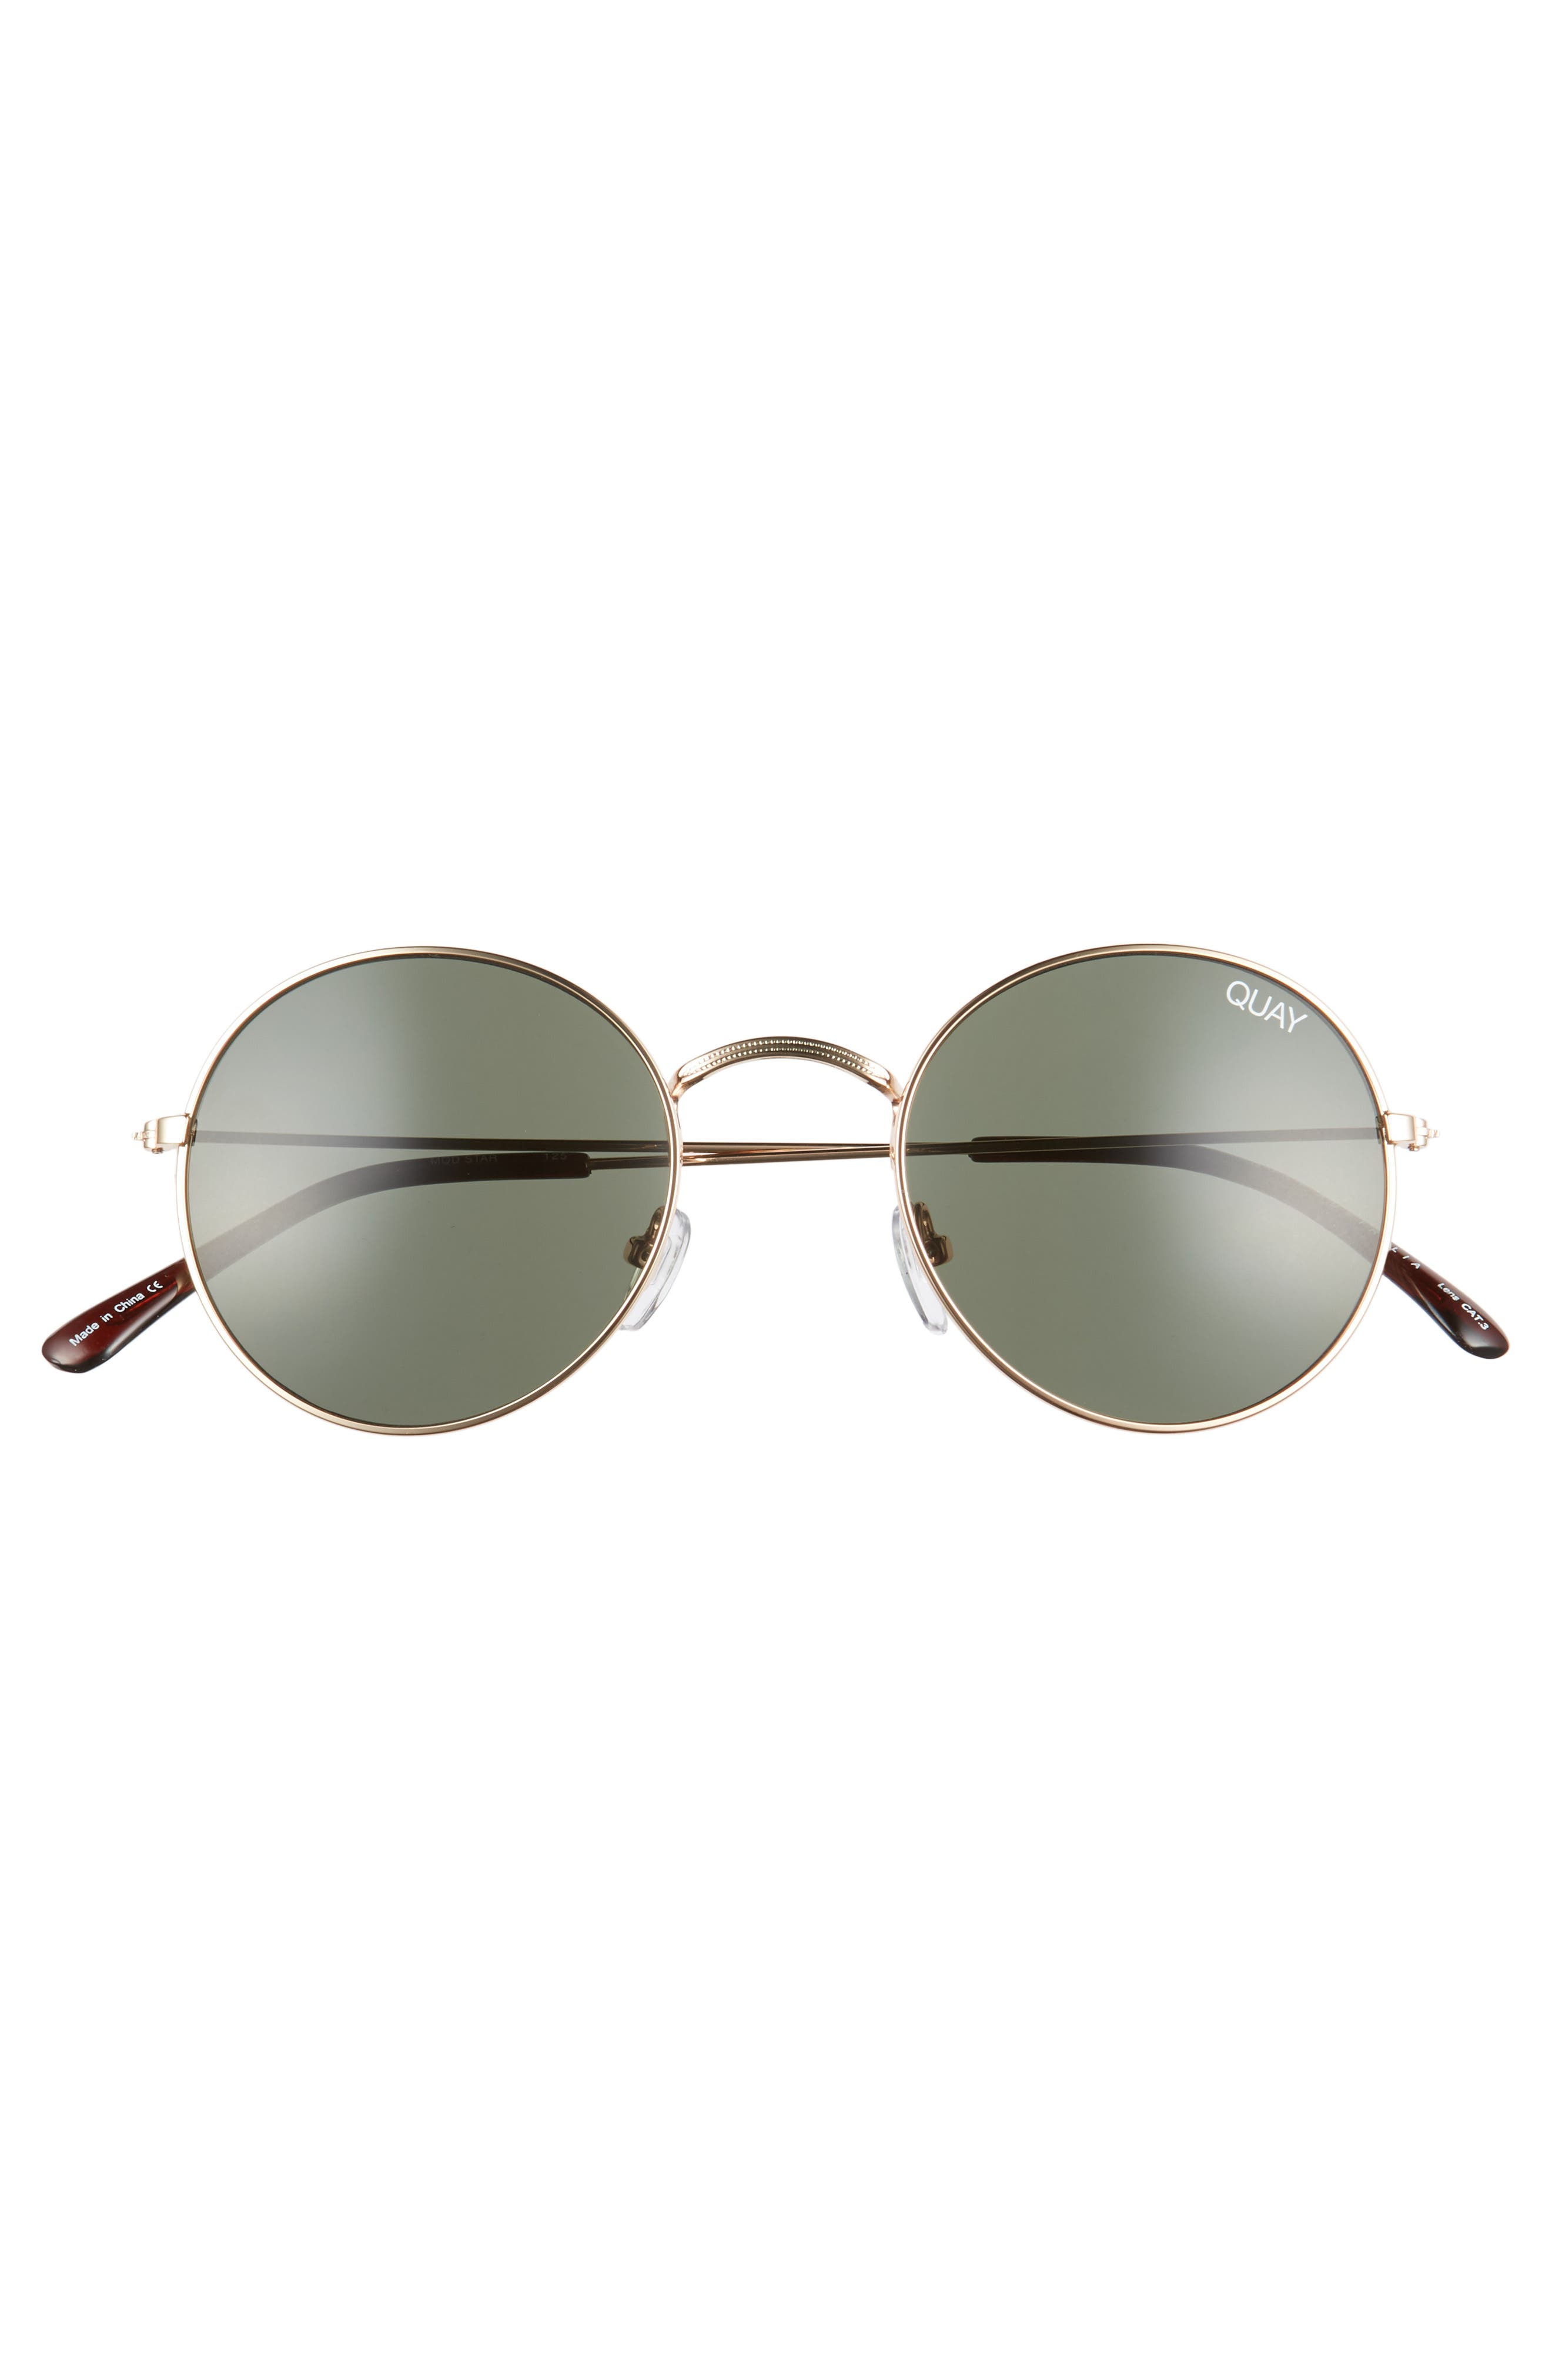 50mm Mod Star Round Sunglasses,                             Alternate thumbnail 3, color,                             Gold/ Green